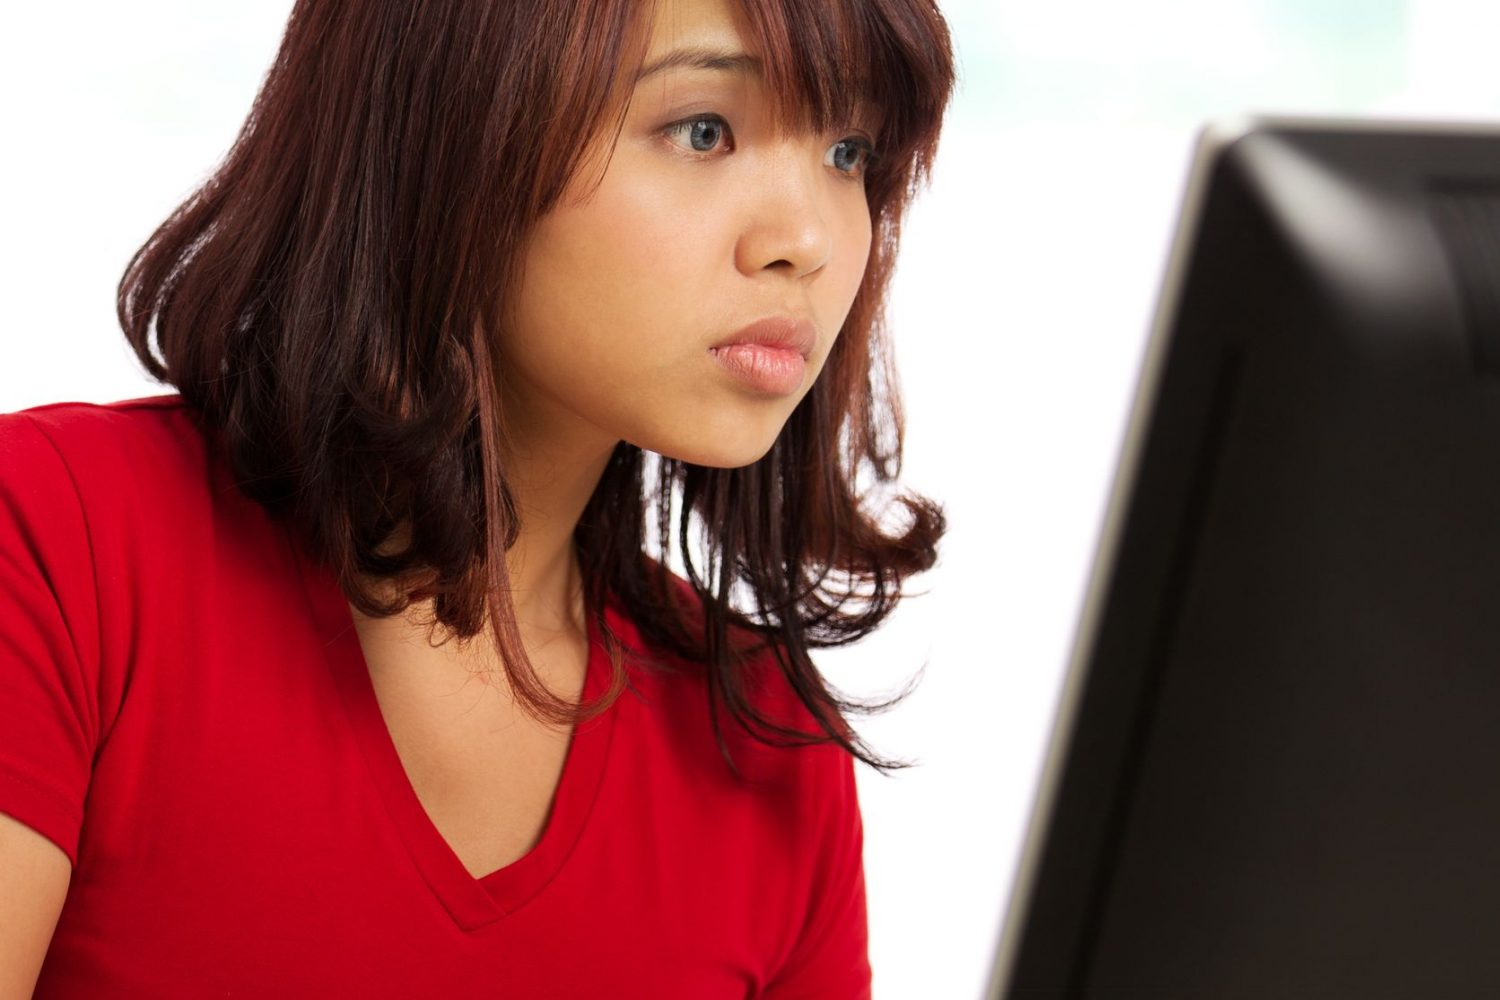 10348980 - image of a female working at desk